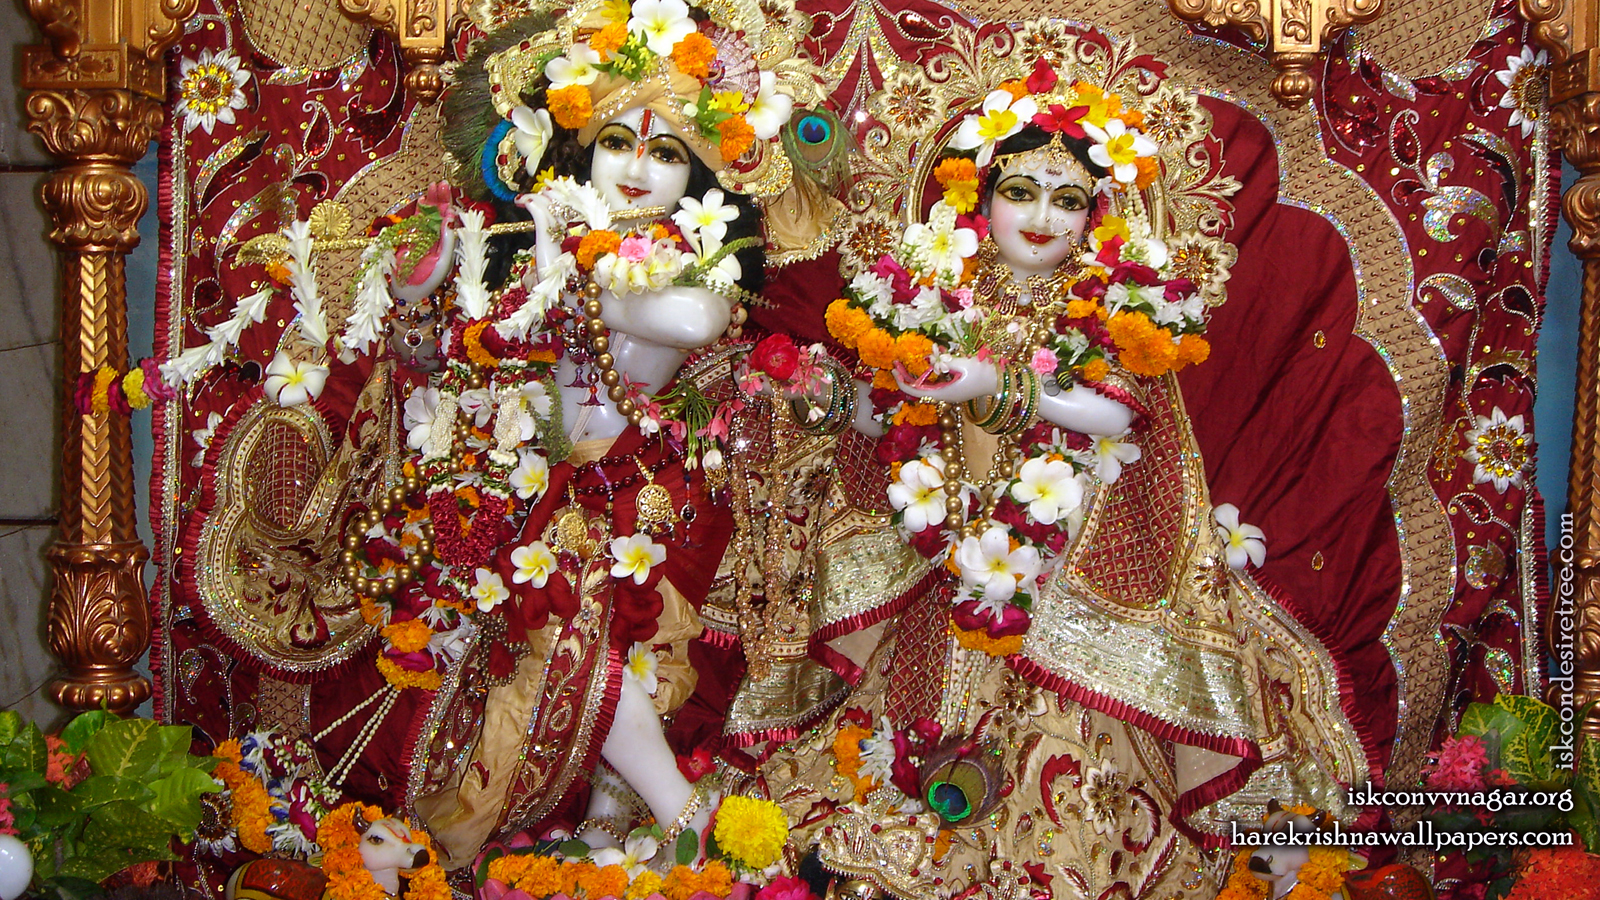 Sri Sri Radha Giridhari Wallpaper (009) Size 1600x900 Download